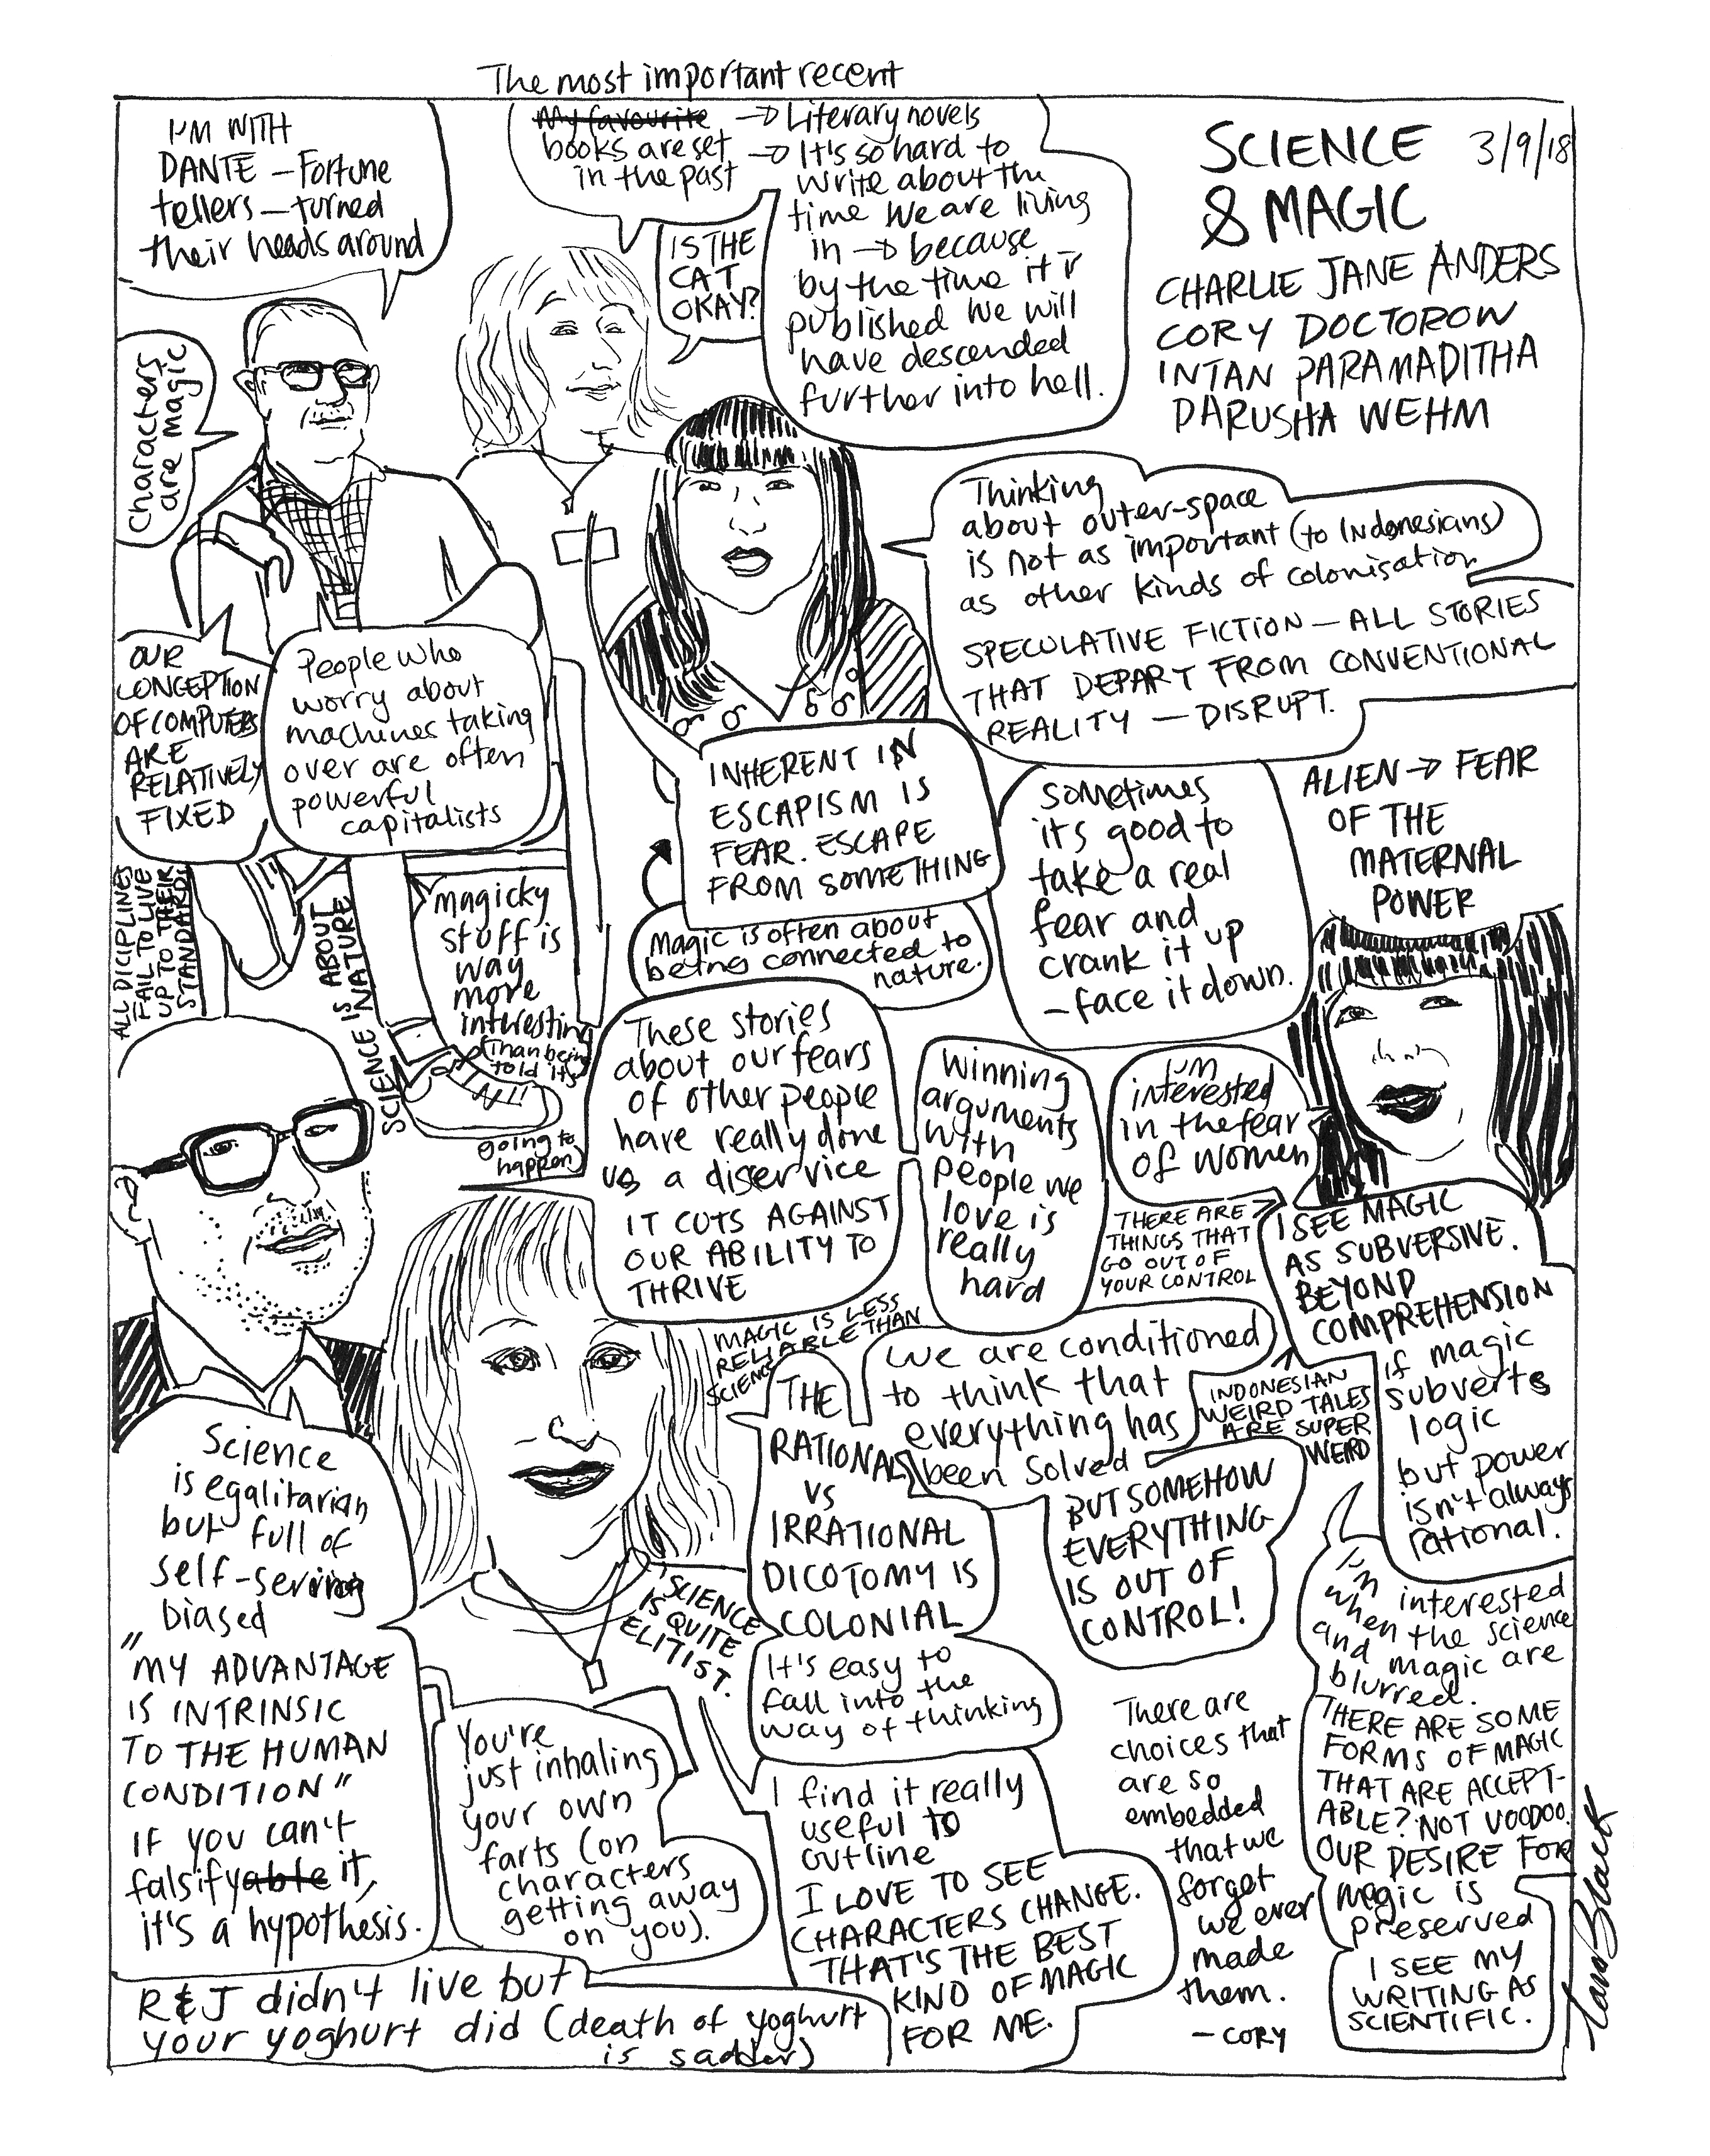 Charlie Jane Anders, Intan Paramaditha and Cory Doctorow